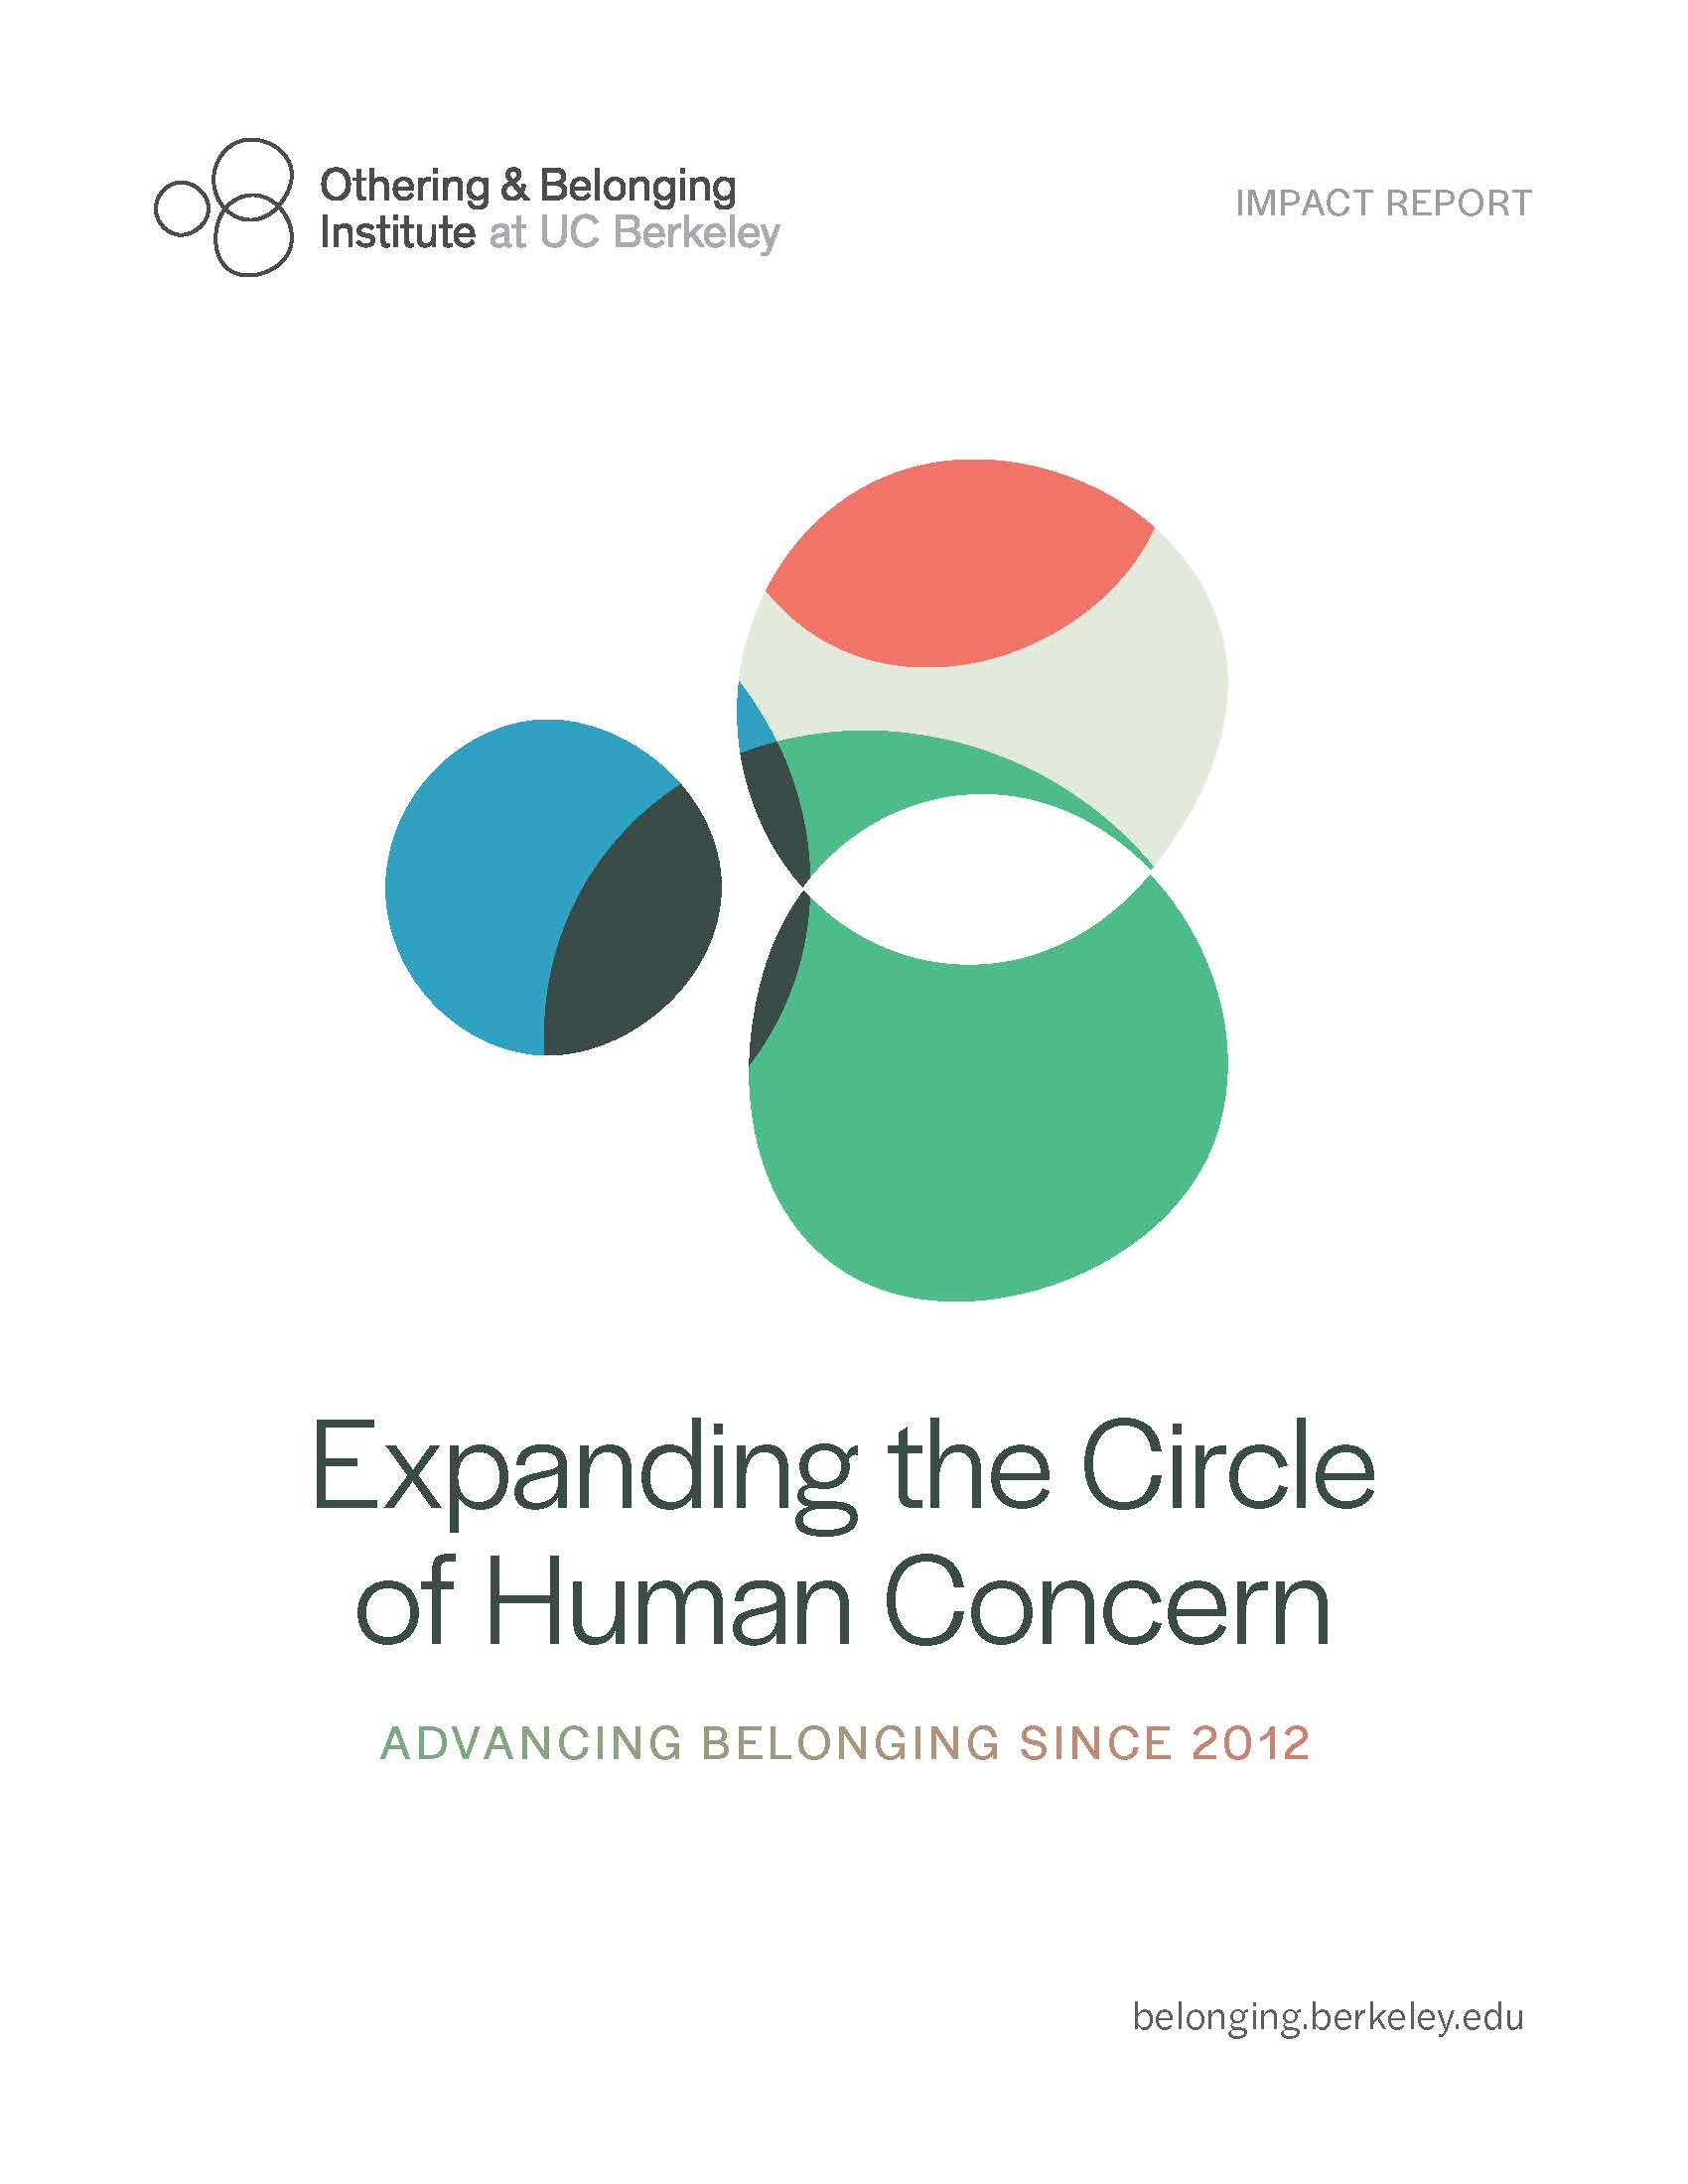 Cover of the 7 year impact report